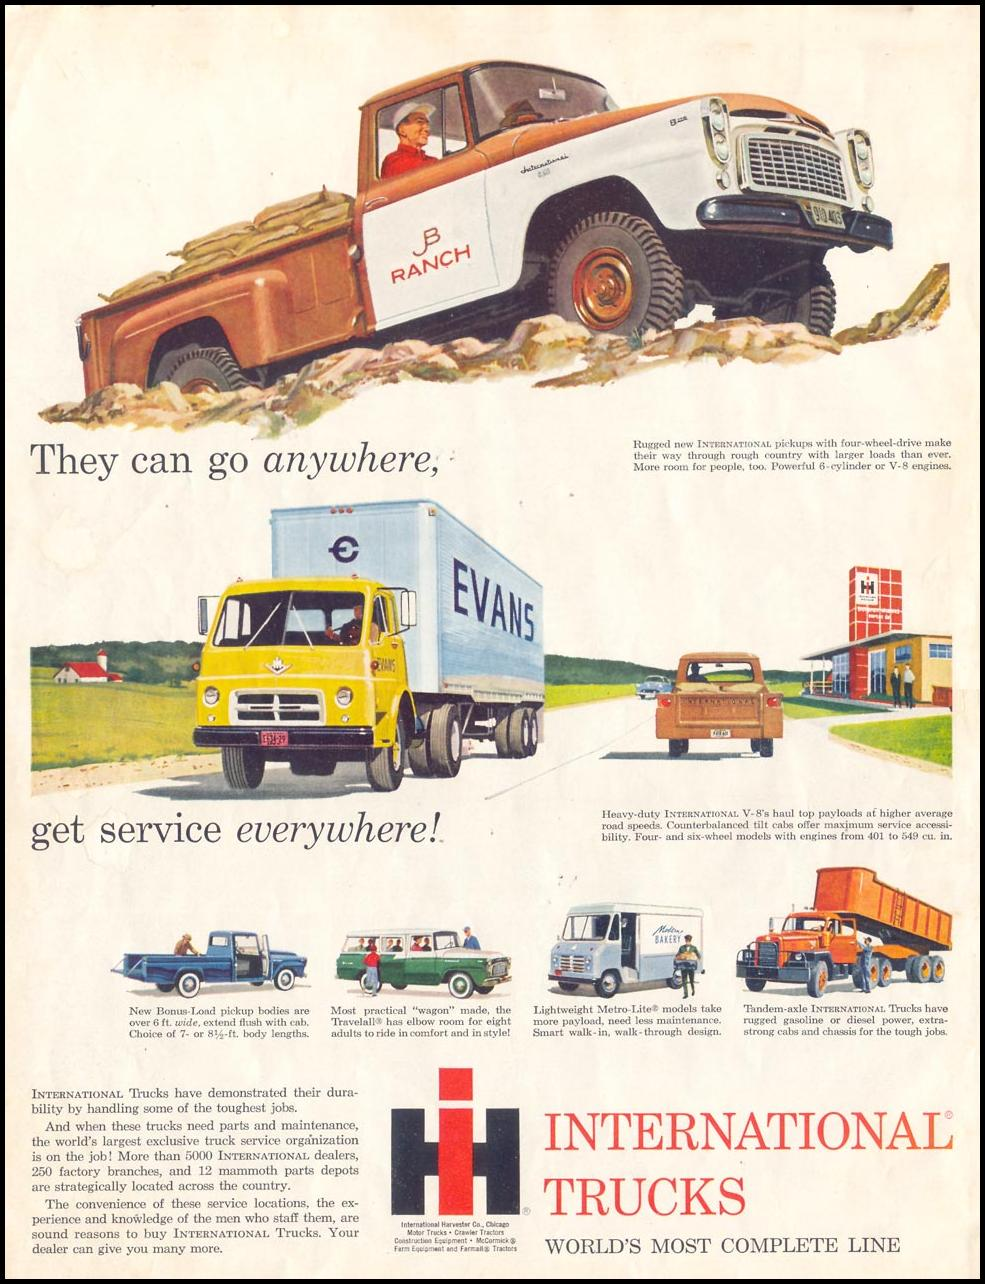 INTERNATIONAL TRUCKS SATURDAY EVENING POST 08/15/1959 INSIDE FRONT